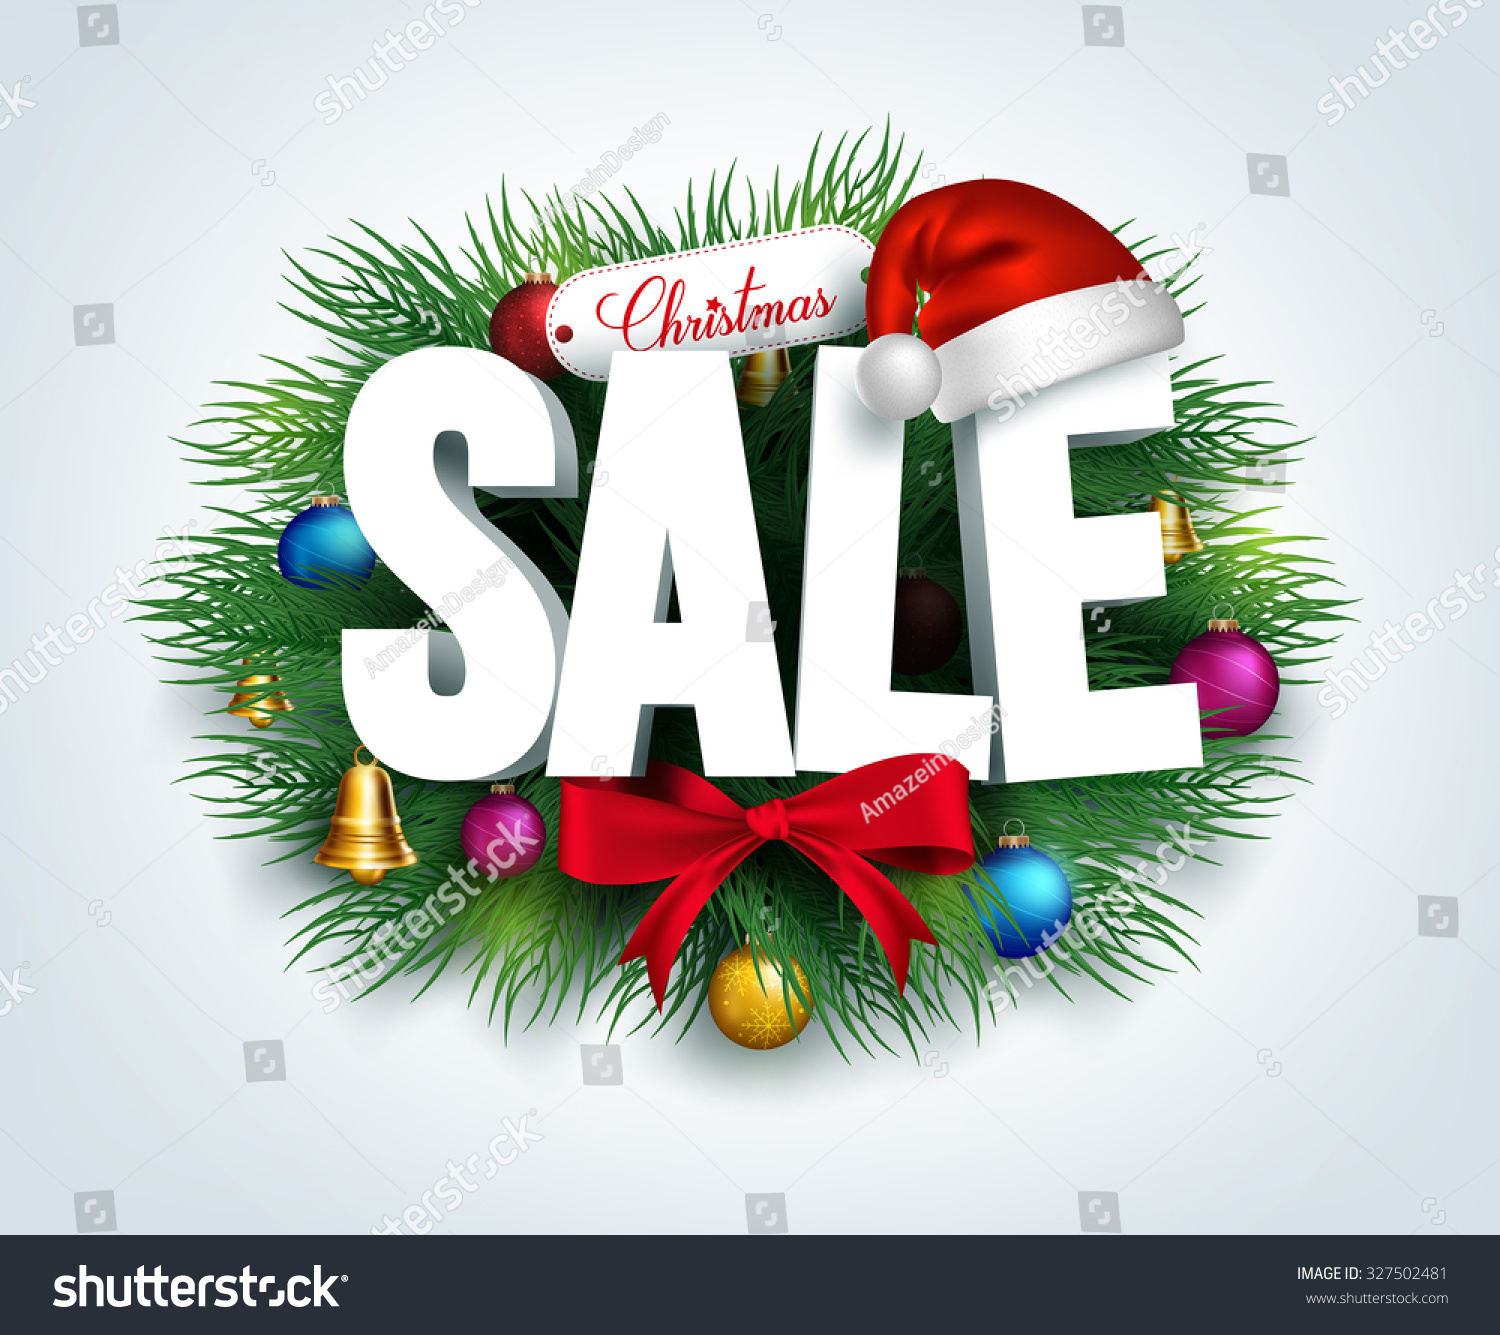 d stock promotion image leaves on in christmas decorations a for decor and background text vector photo sale with white